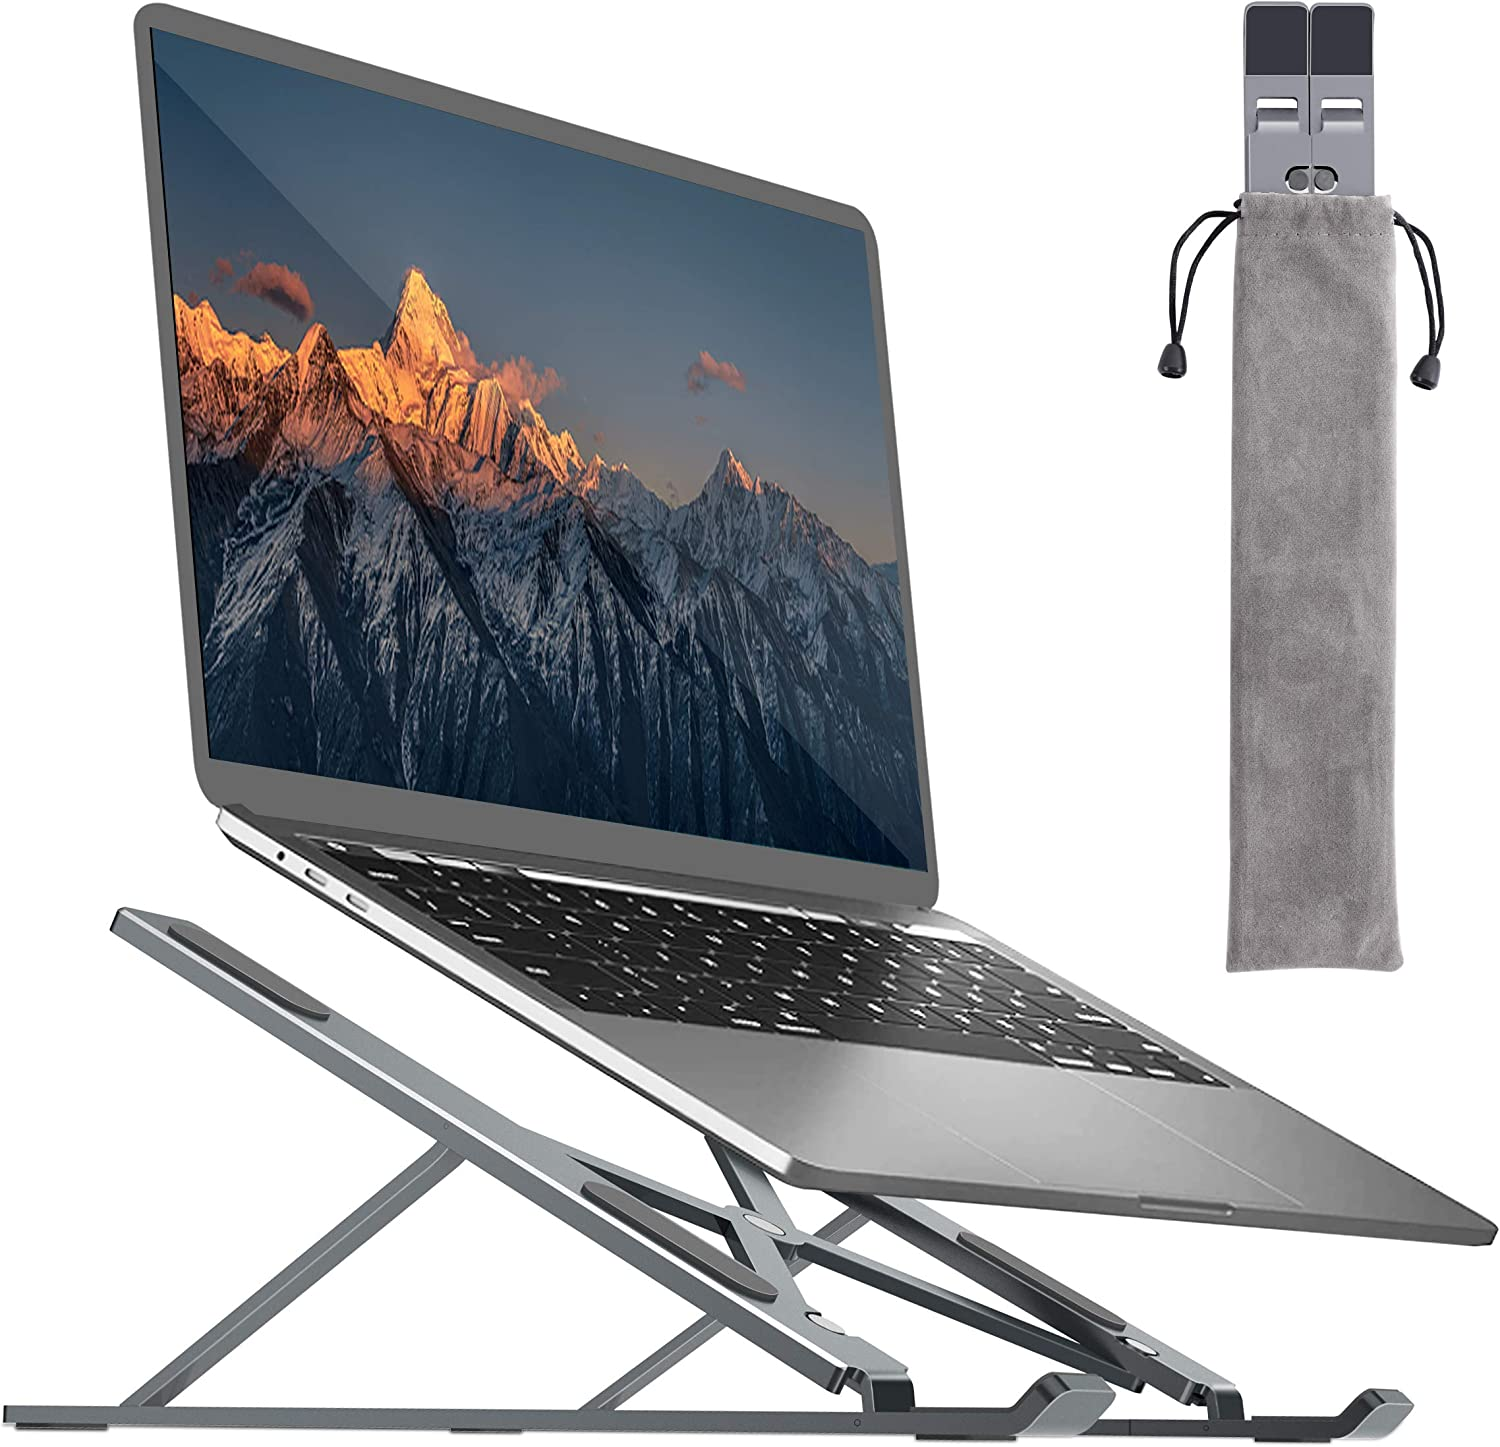 Max 89% OFF Challenge the lowest price of Japan Laptop Stand for Desk Height Portable Adjustable